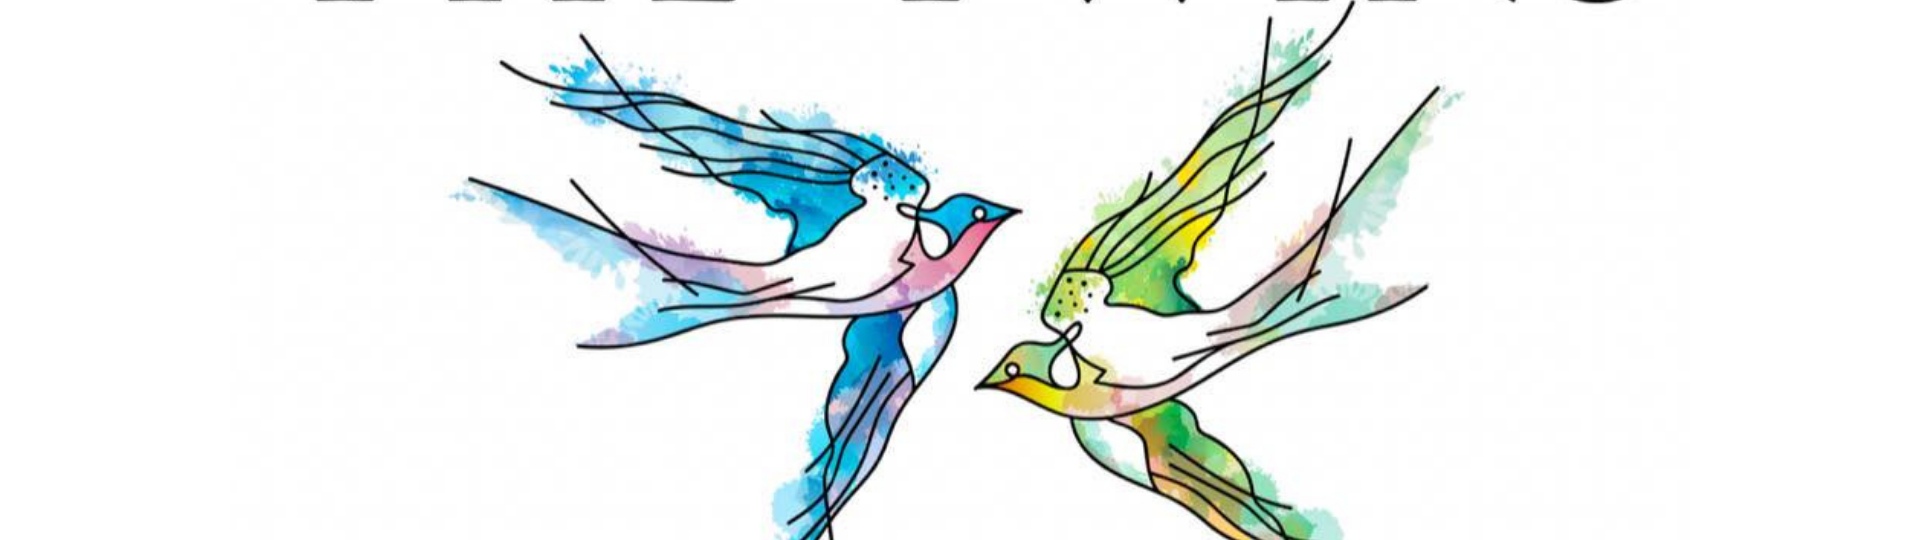 the twins restaurant logo. two watercolor birds